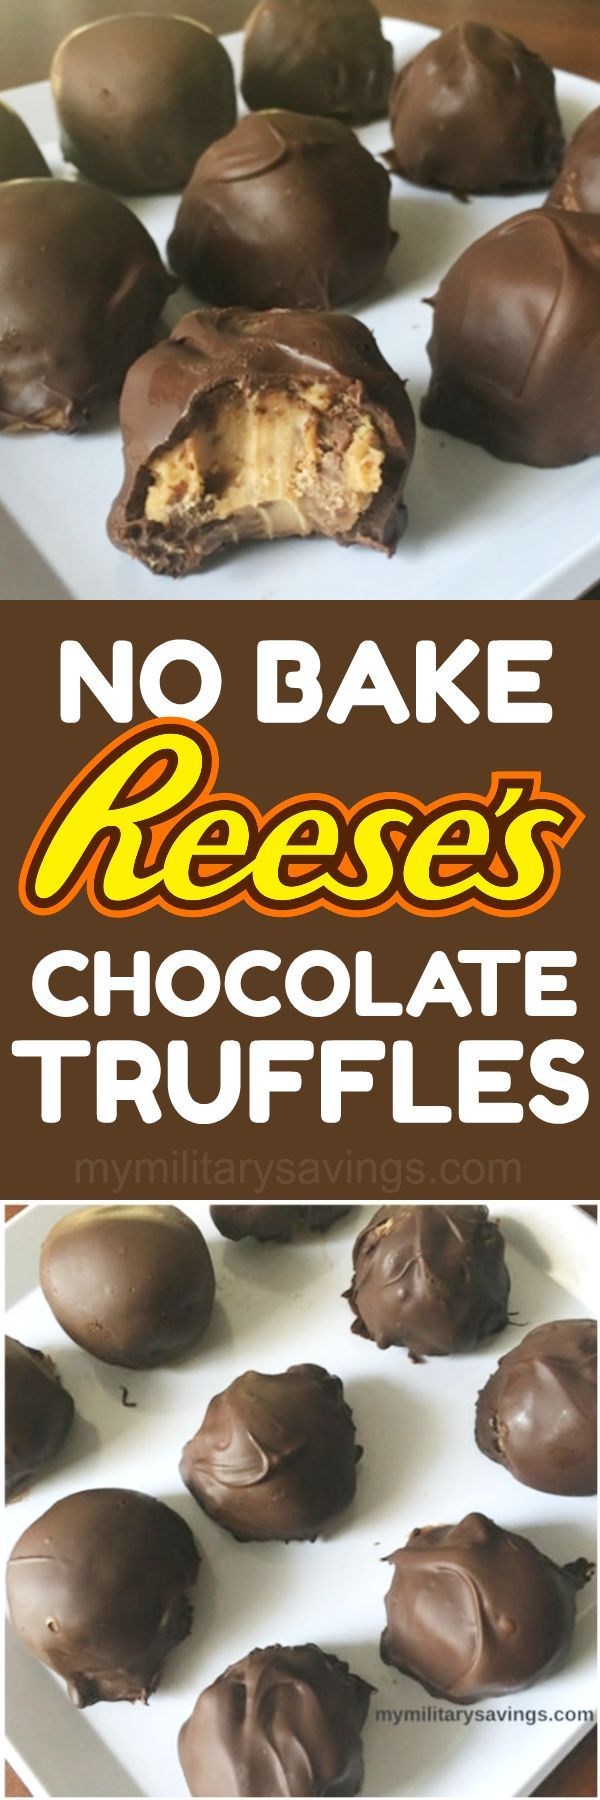 DELICIOUS No Bake Reese's Peanut Butter Cup Chocolate Truffles recipe! Add this to your dessert recipes board!